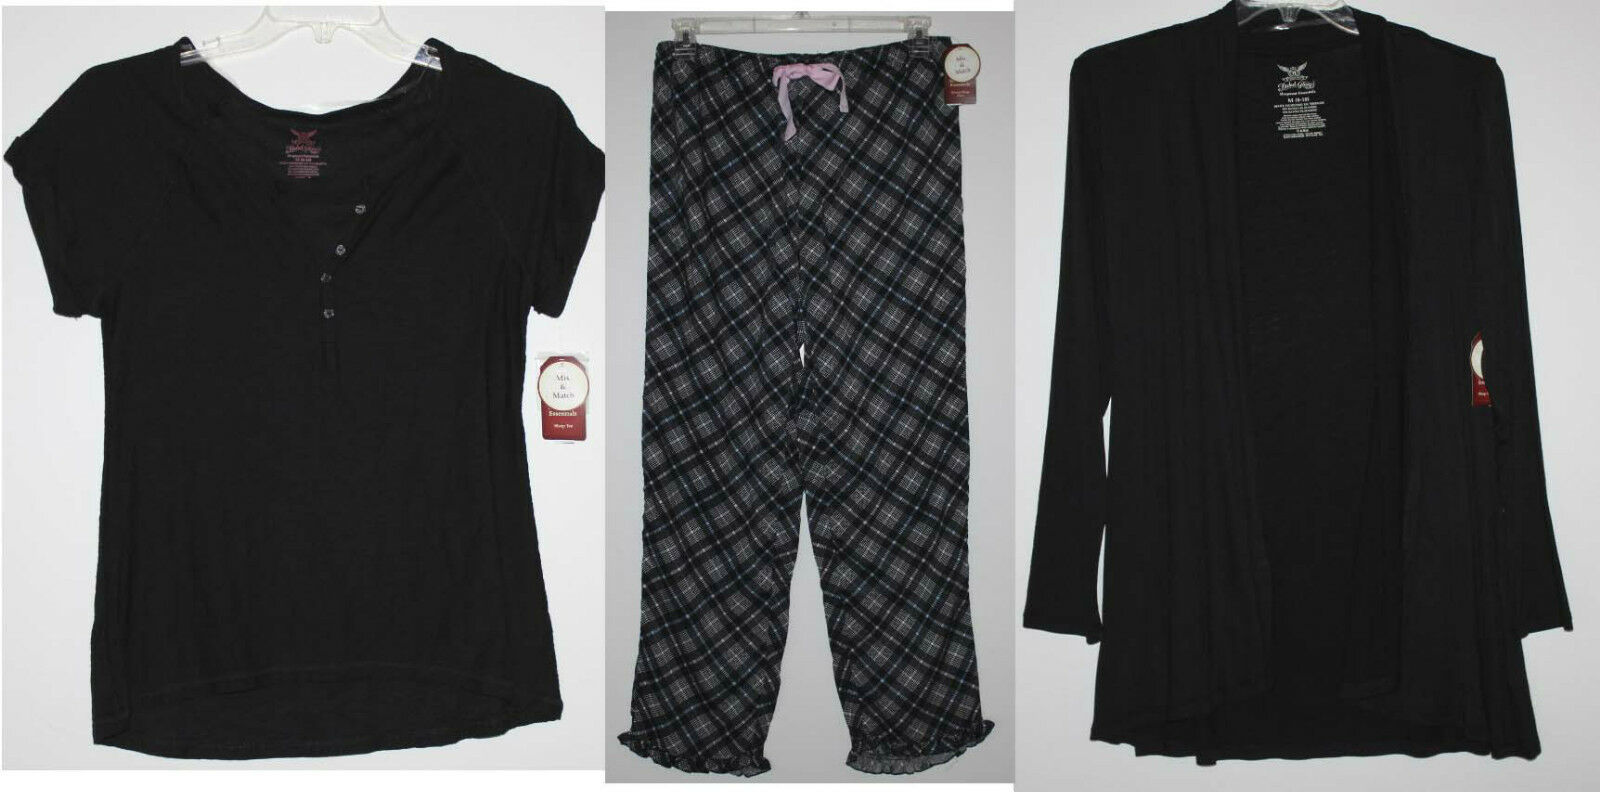 NWT Women's M 8 10 3 Pc. Pajamas PJ Lounge Set Top Cardigan Plaid Pants